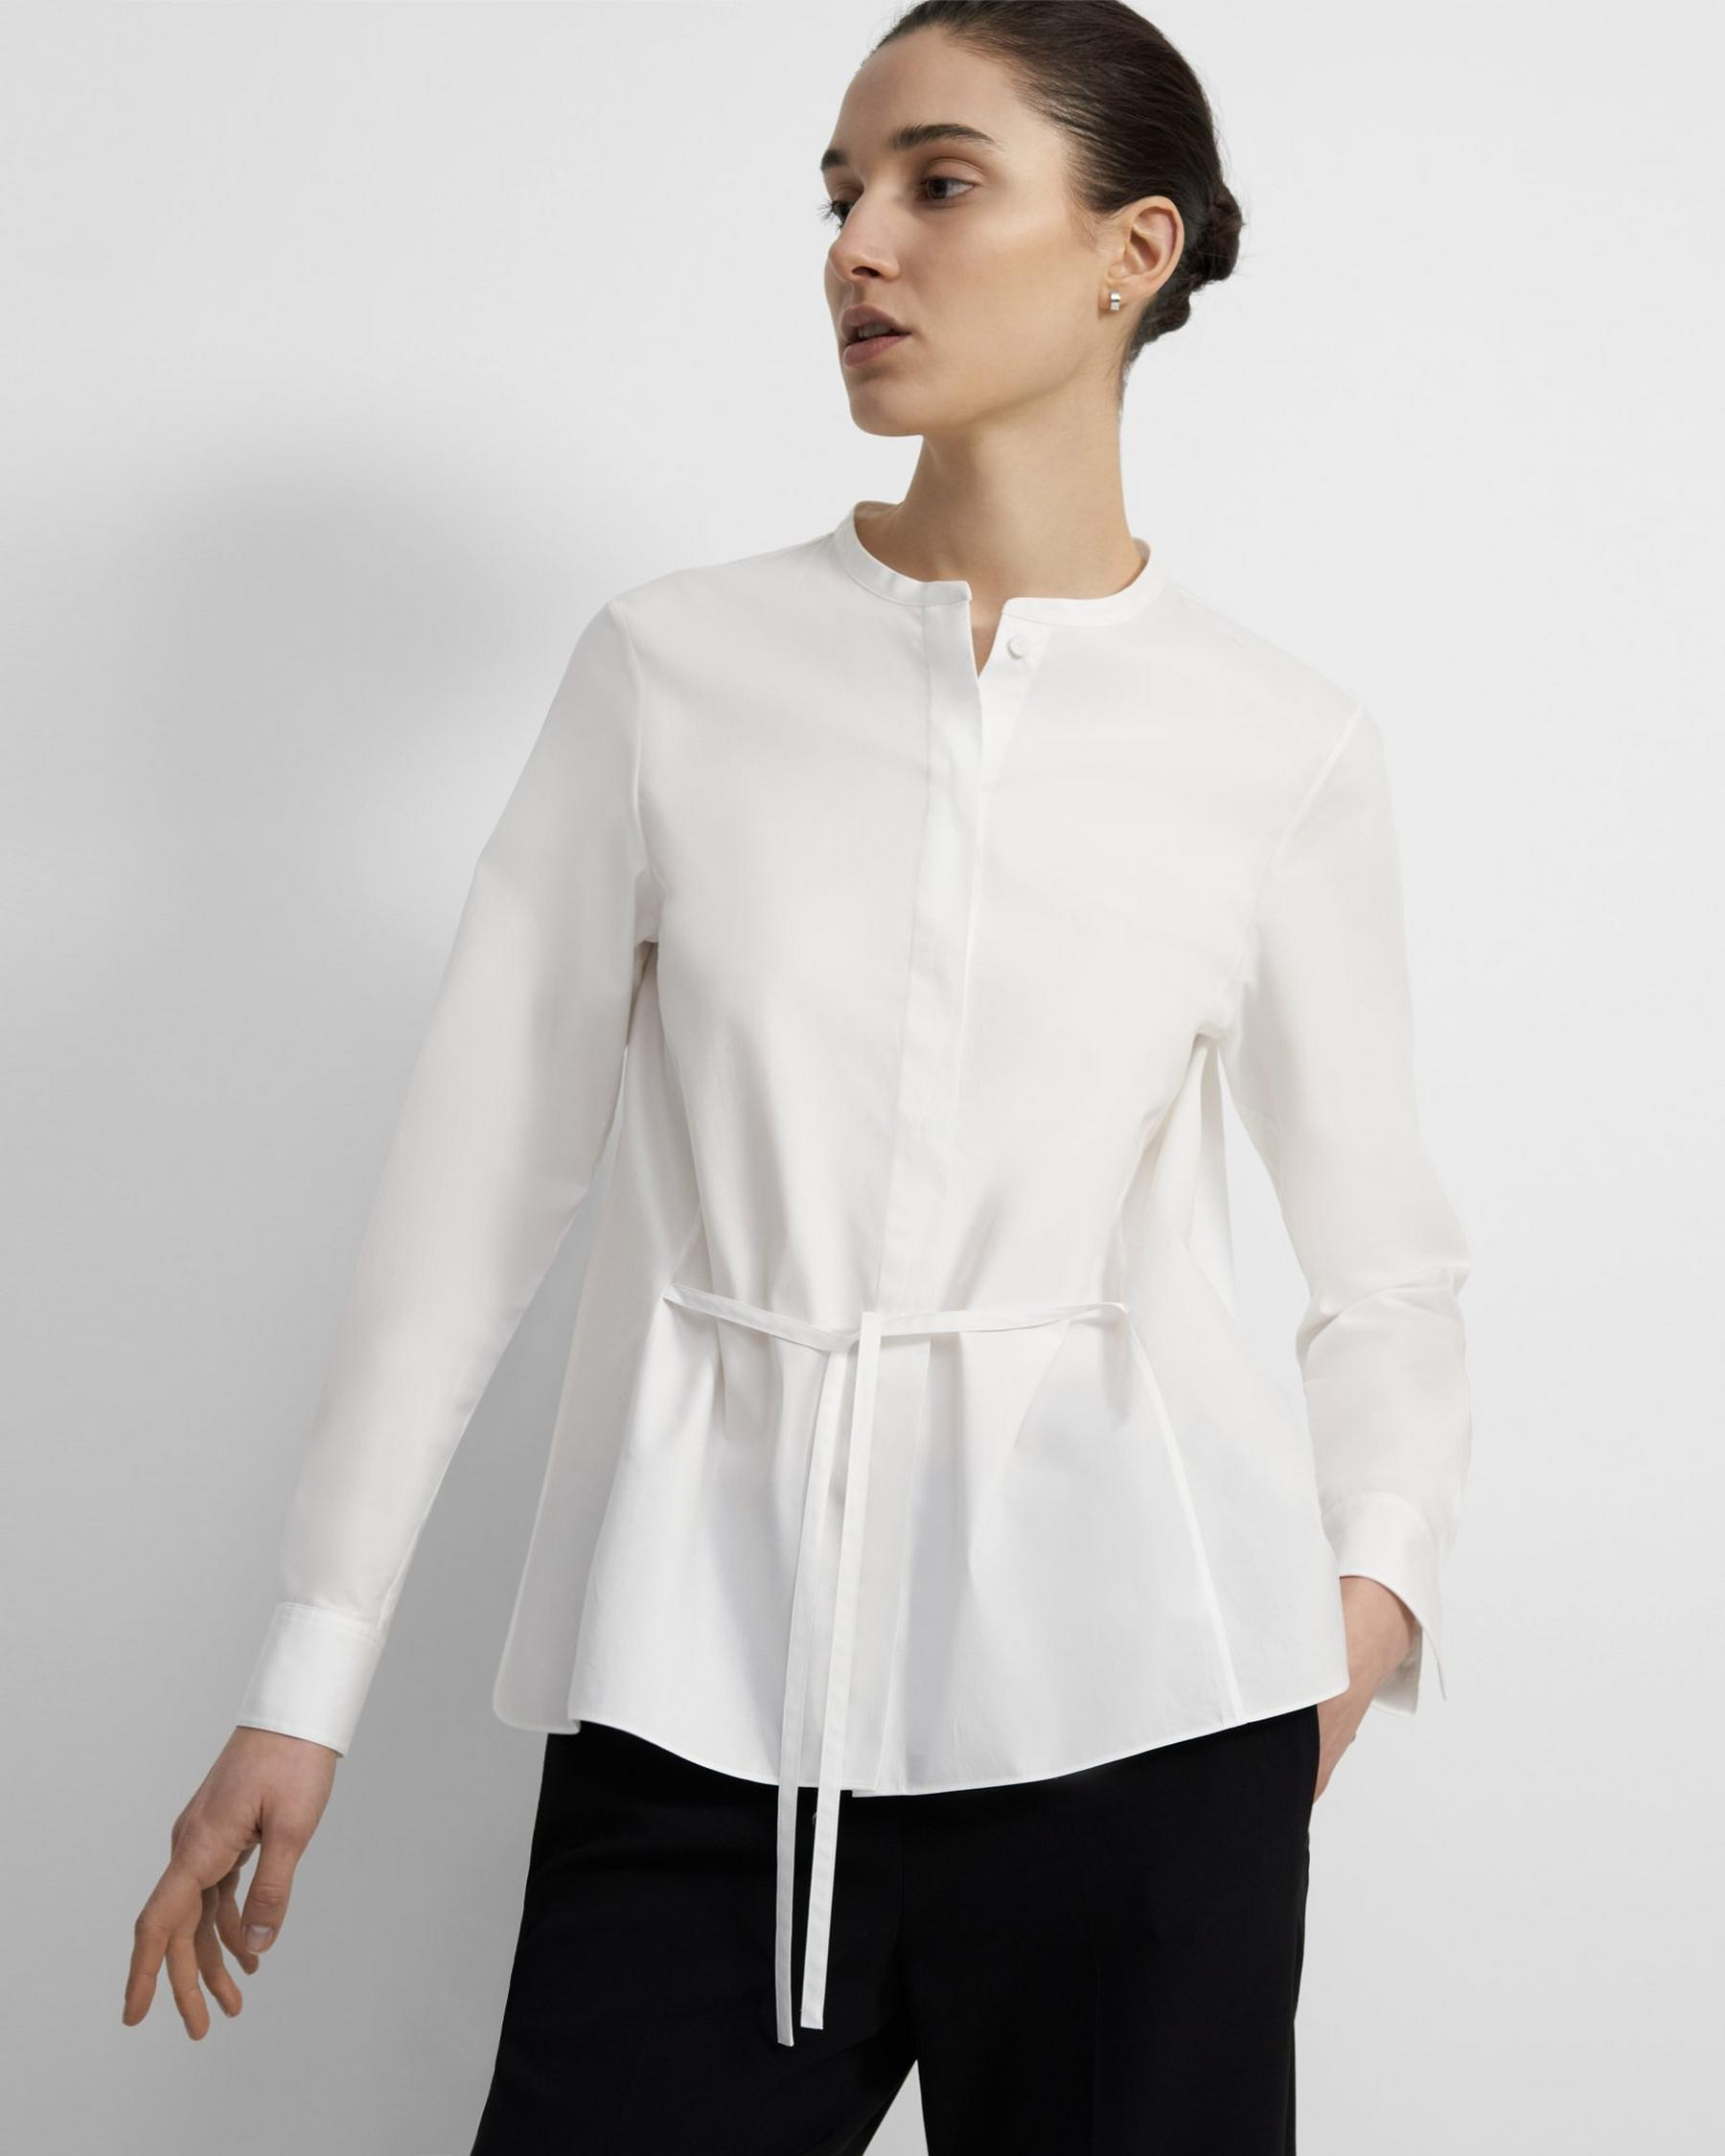 Cinched Shirt in Good Cotton